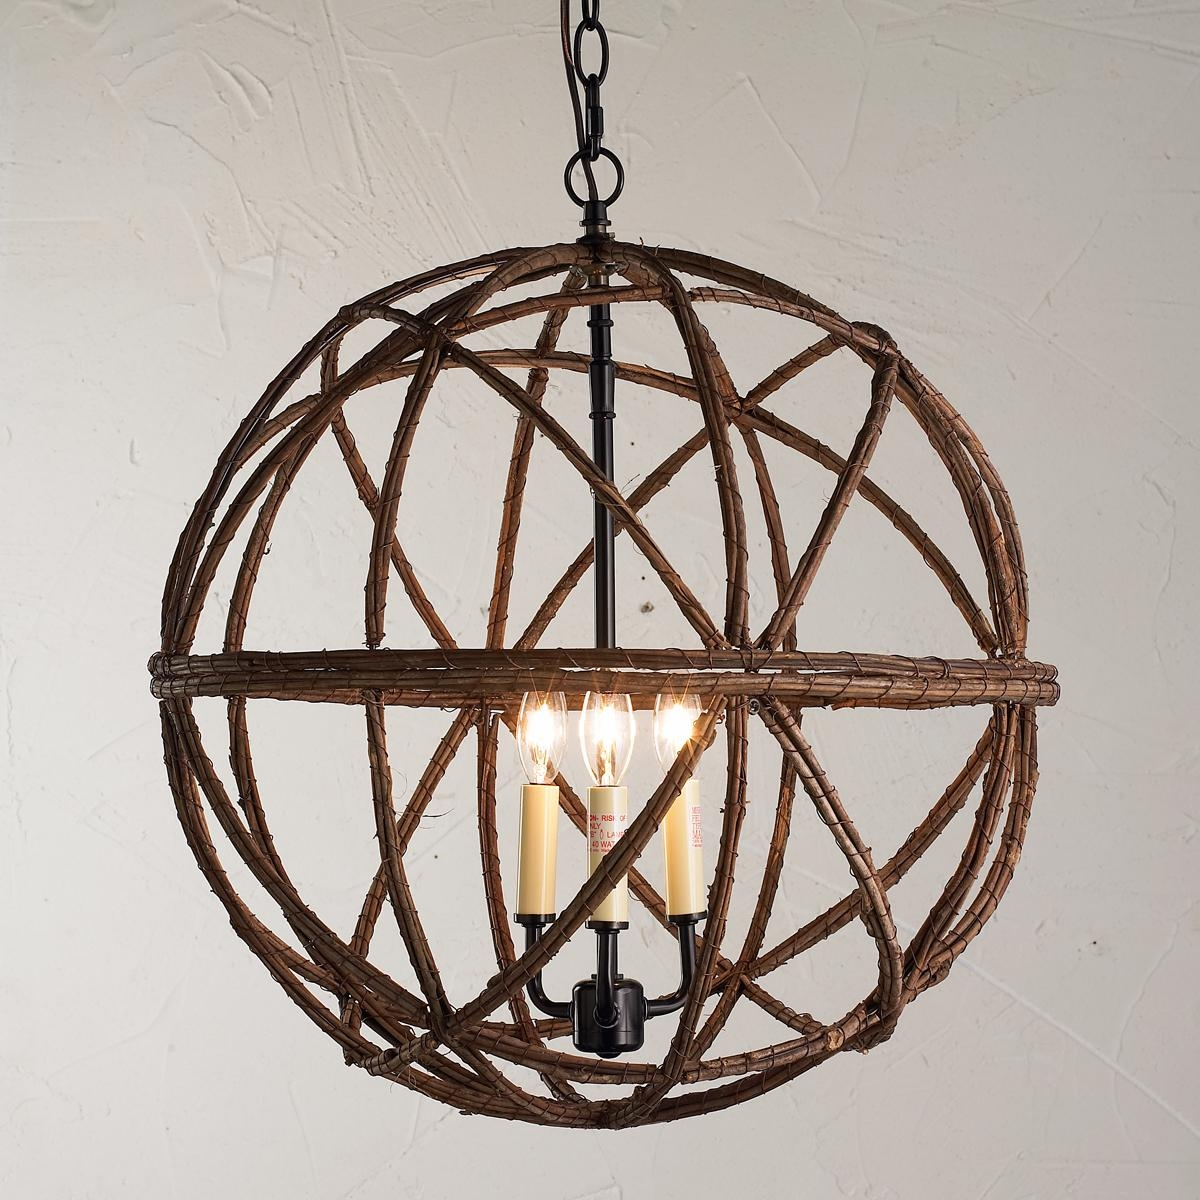 Decor Sphere Chandelier Is One Of The Best Light Fixture And Within Metal Sphere Chandelier (Image 6 of 15)